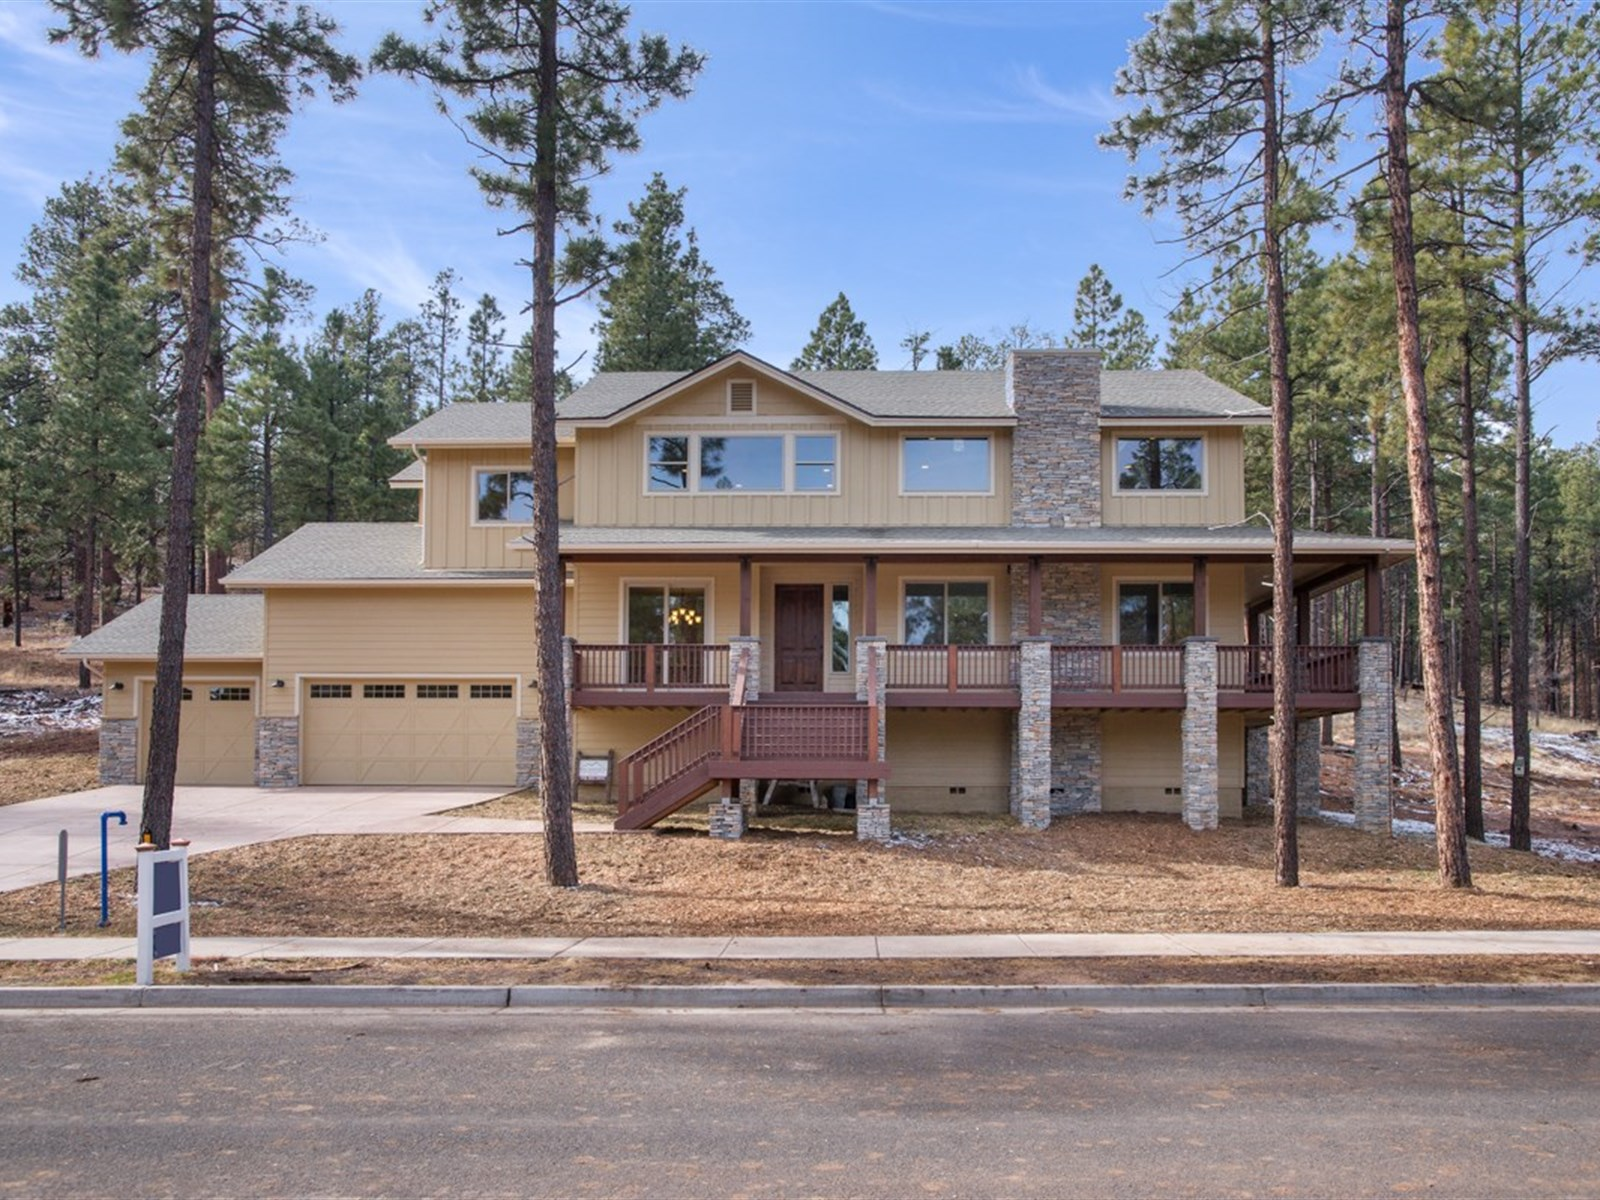 Maison unifamiliale pour l Vente à Luxury Home in the Trees 2065 N Cobblestone Cir Flagstaff, Arizona 86001 États-Unis